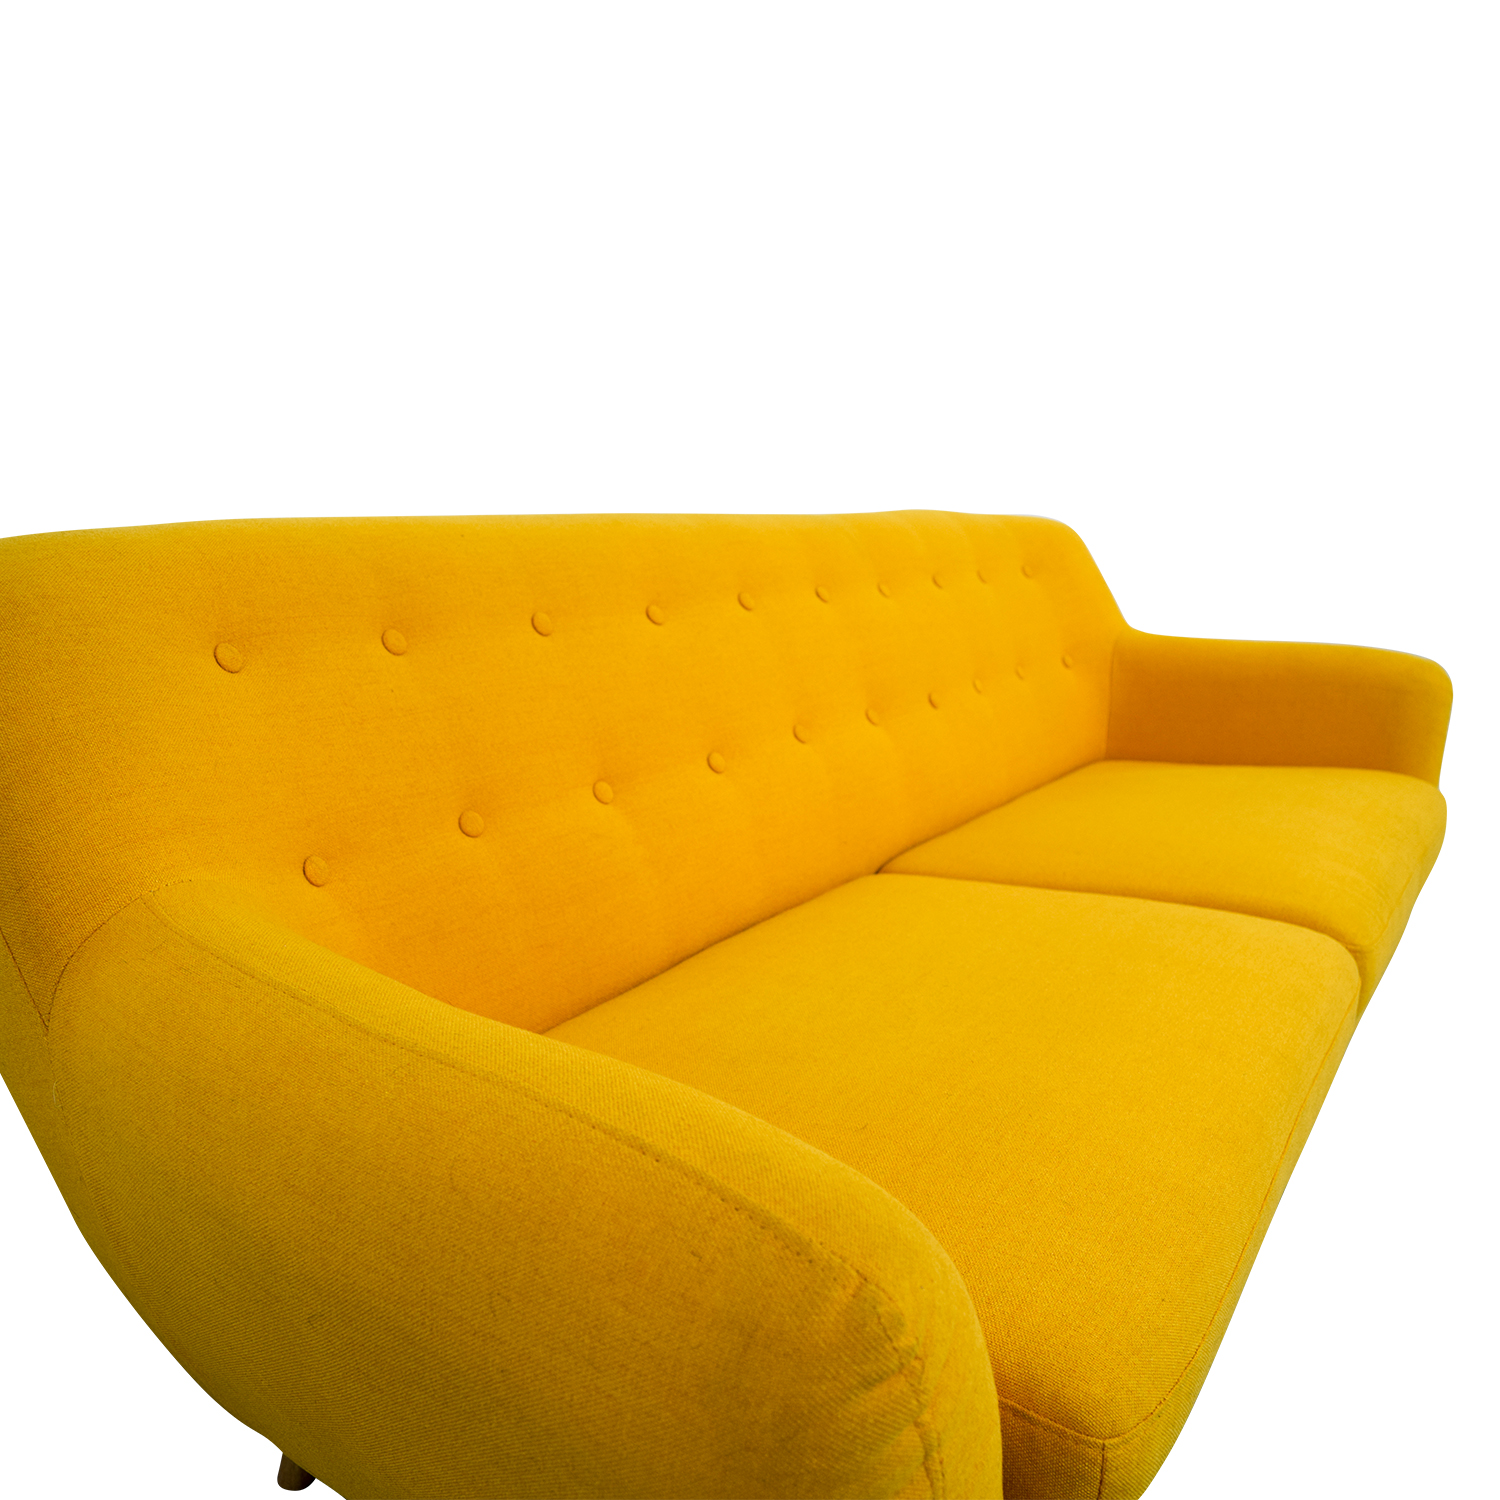 Pleasing 42 Off Mustard Yellow Sofa Sofas Onthecornerstone Fun Painted Chair Ideas Images Onthecornerstoneorg